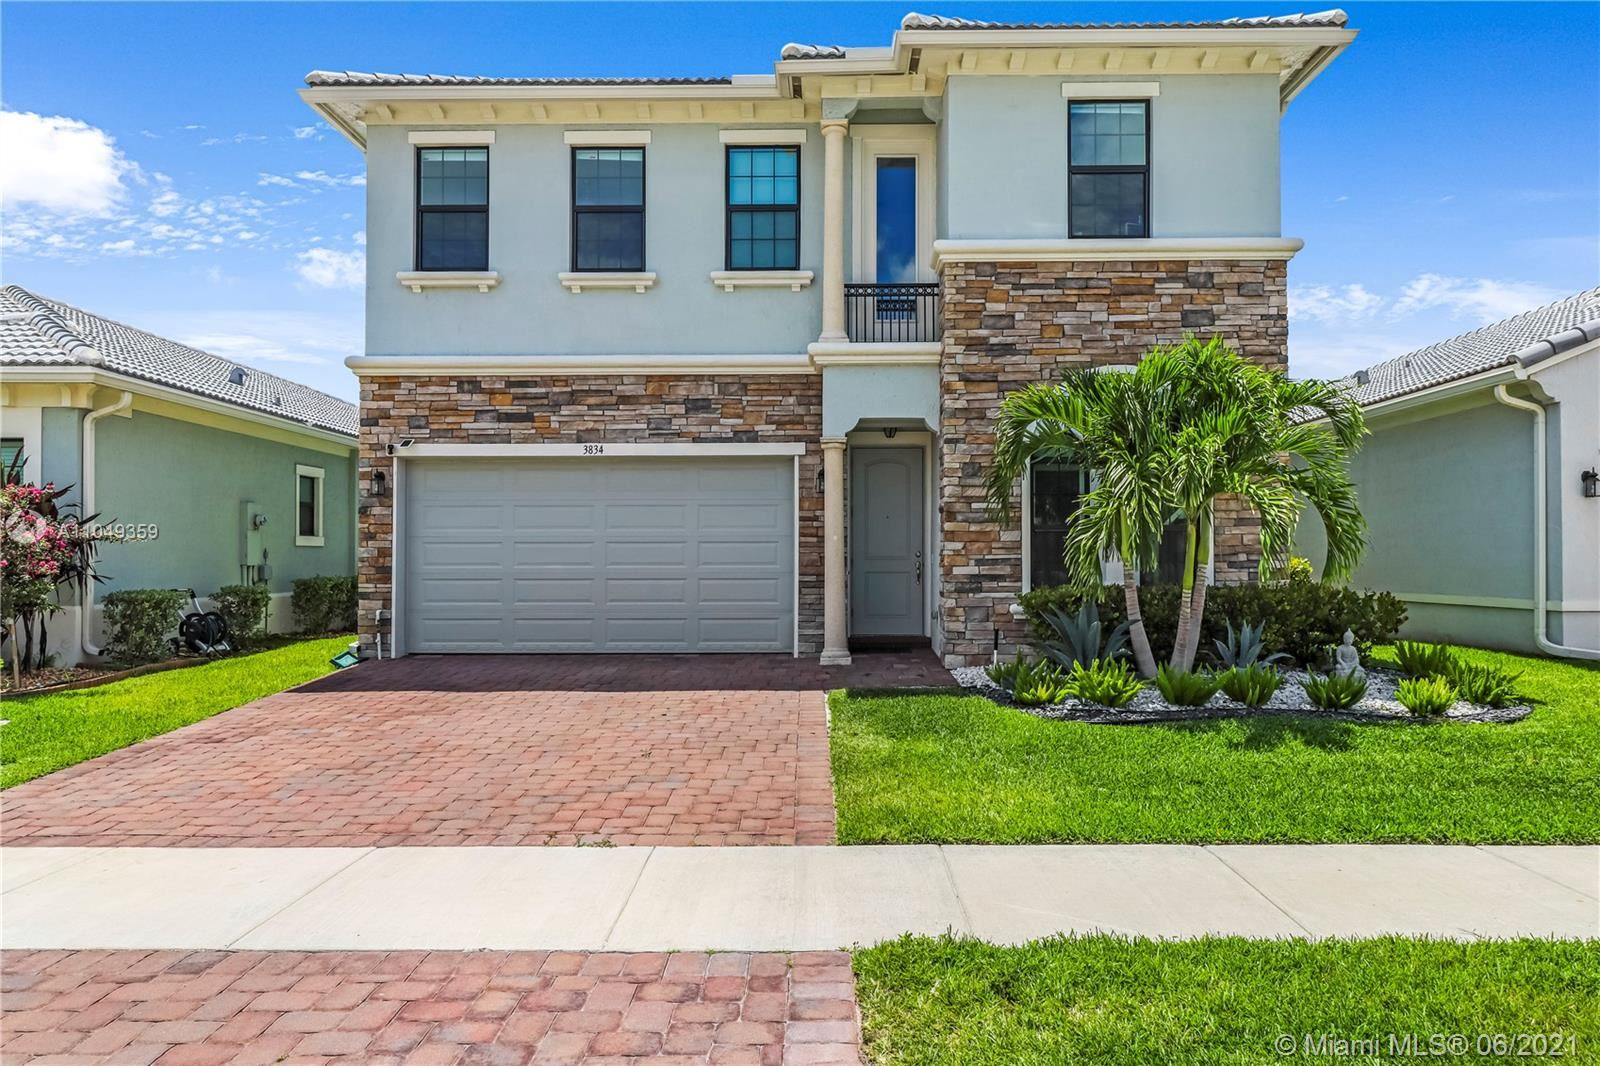 3834 NW 89th Way, Coral Springs, FL 33065 - #: A11049359